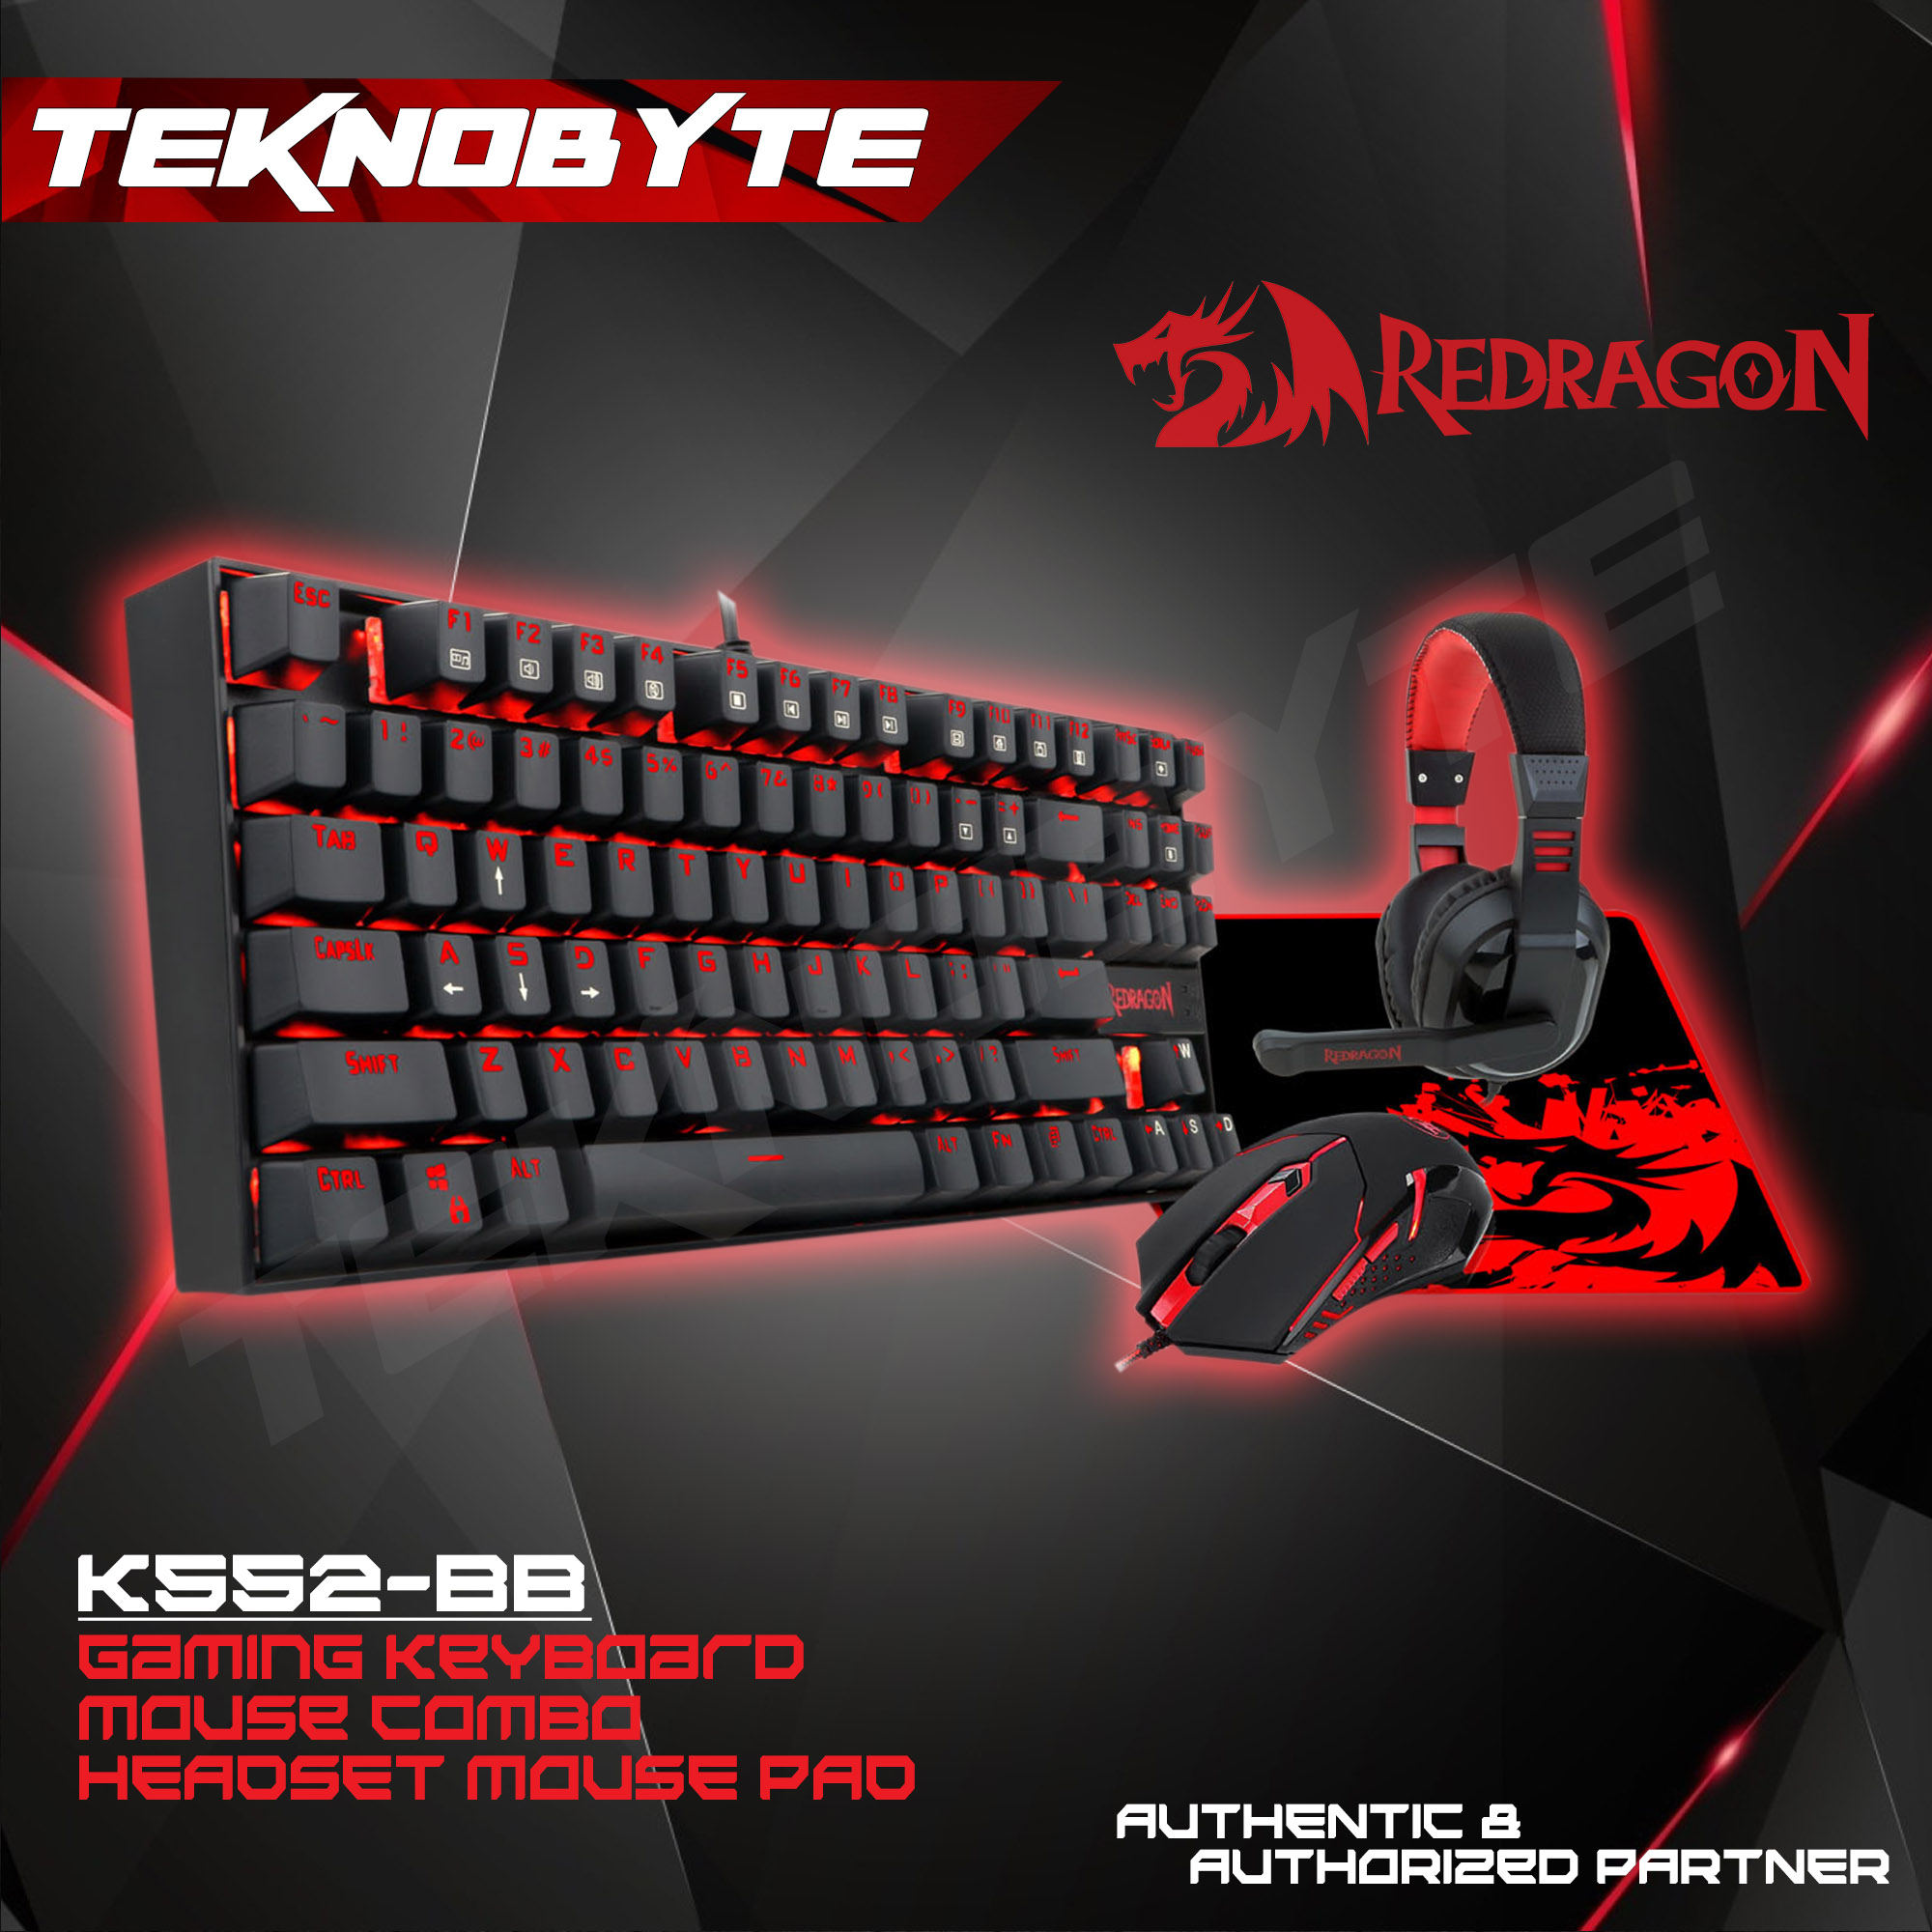 Redragon K552-BB 4 in 1 Set Gaming Essentials Mechanical  Keyboard(SplashProof/Red Backlit) / Mouse / MousePad(LargeXL) / Headset